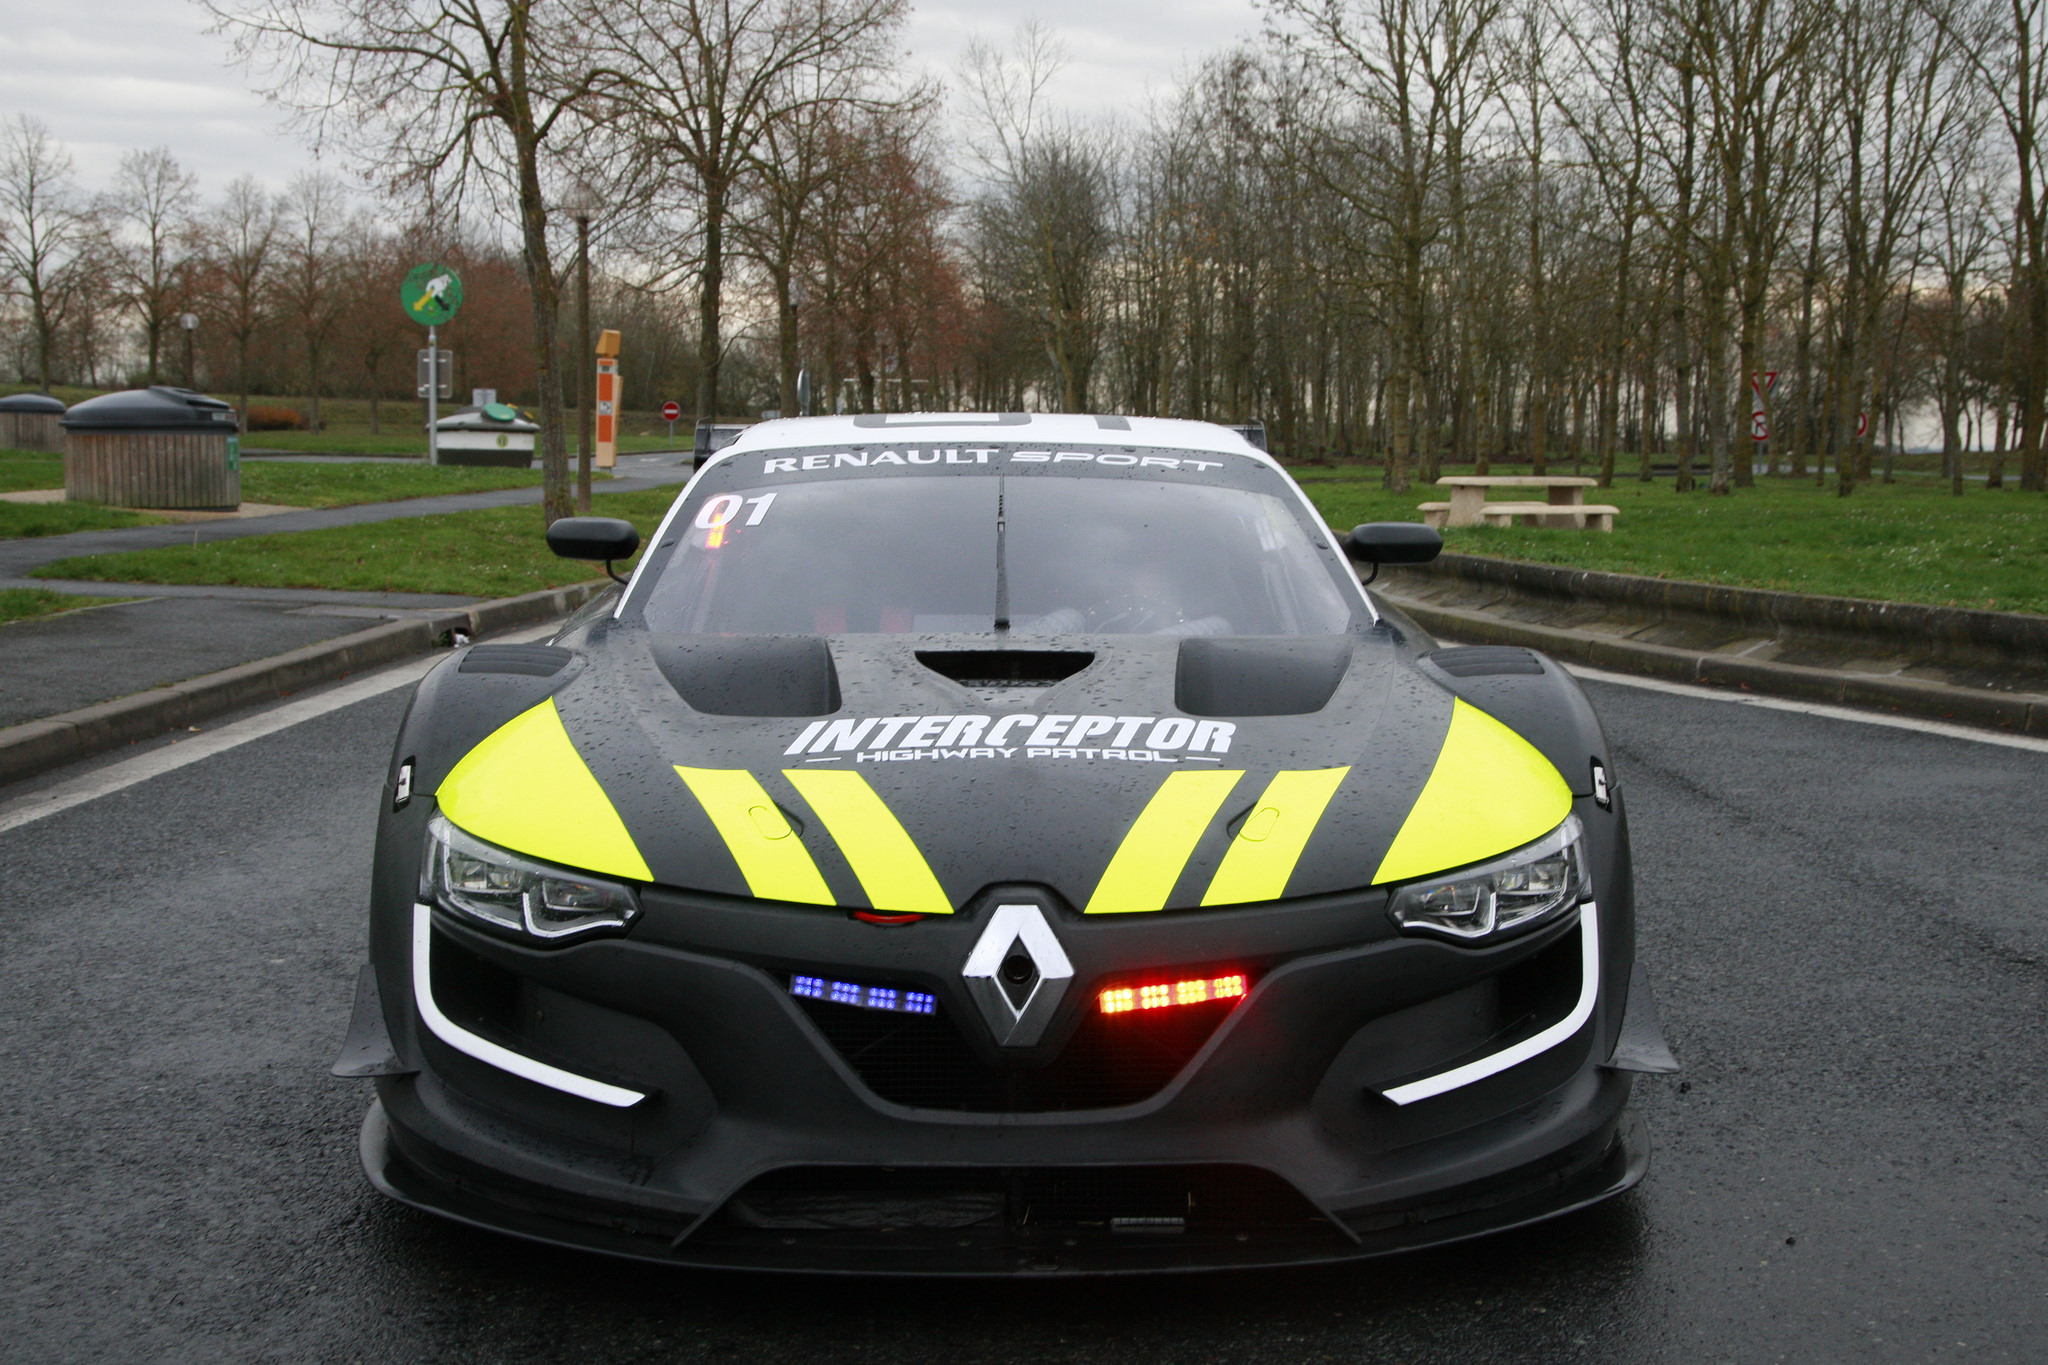 la gendarmerie va t elle rouler avec une renault sport r s 01. Black Bedroom Furniture Sets. Home Design Ideas